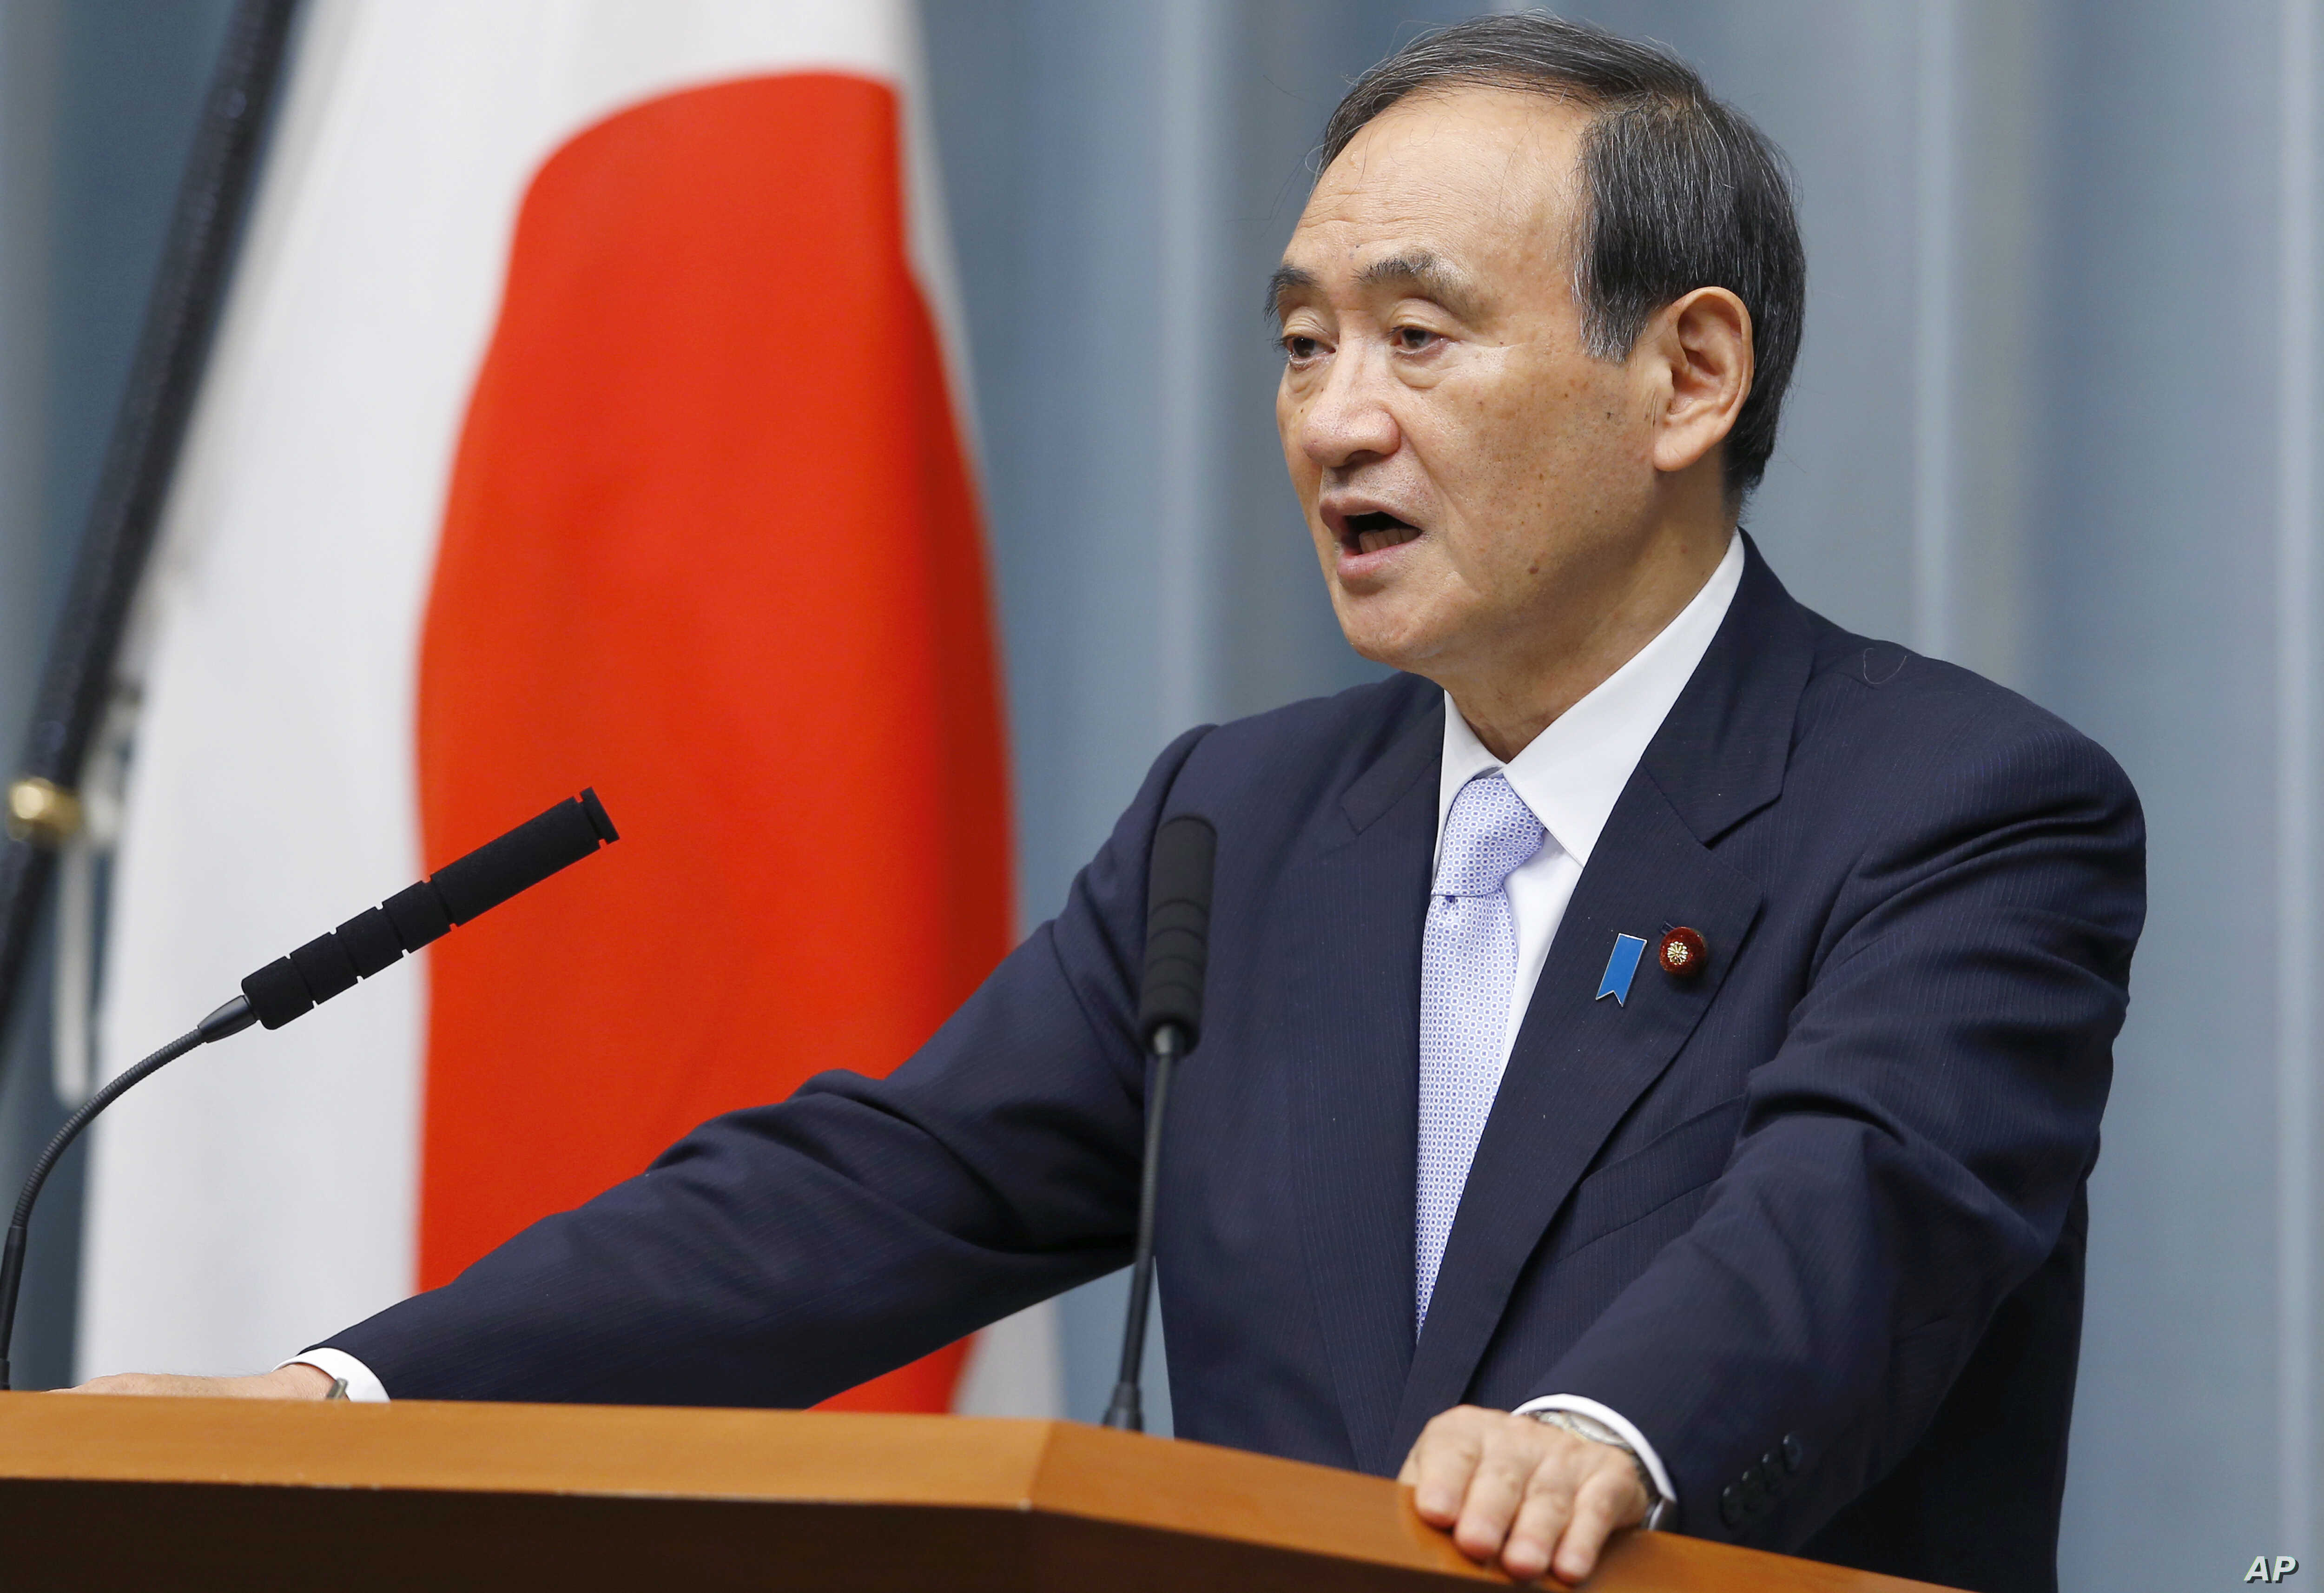 Japan's Chief Cabinet Secretary Yoshihide Suga speaks during a press conference to announce cabinet changes at the prime minister's official residence in Tokyo, Aug. 3, 2017.